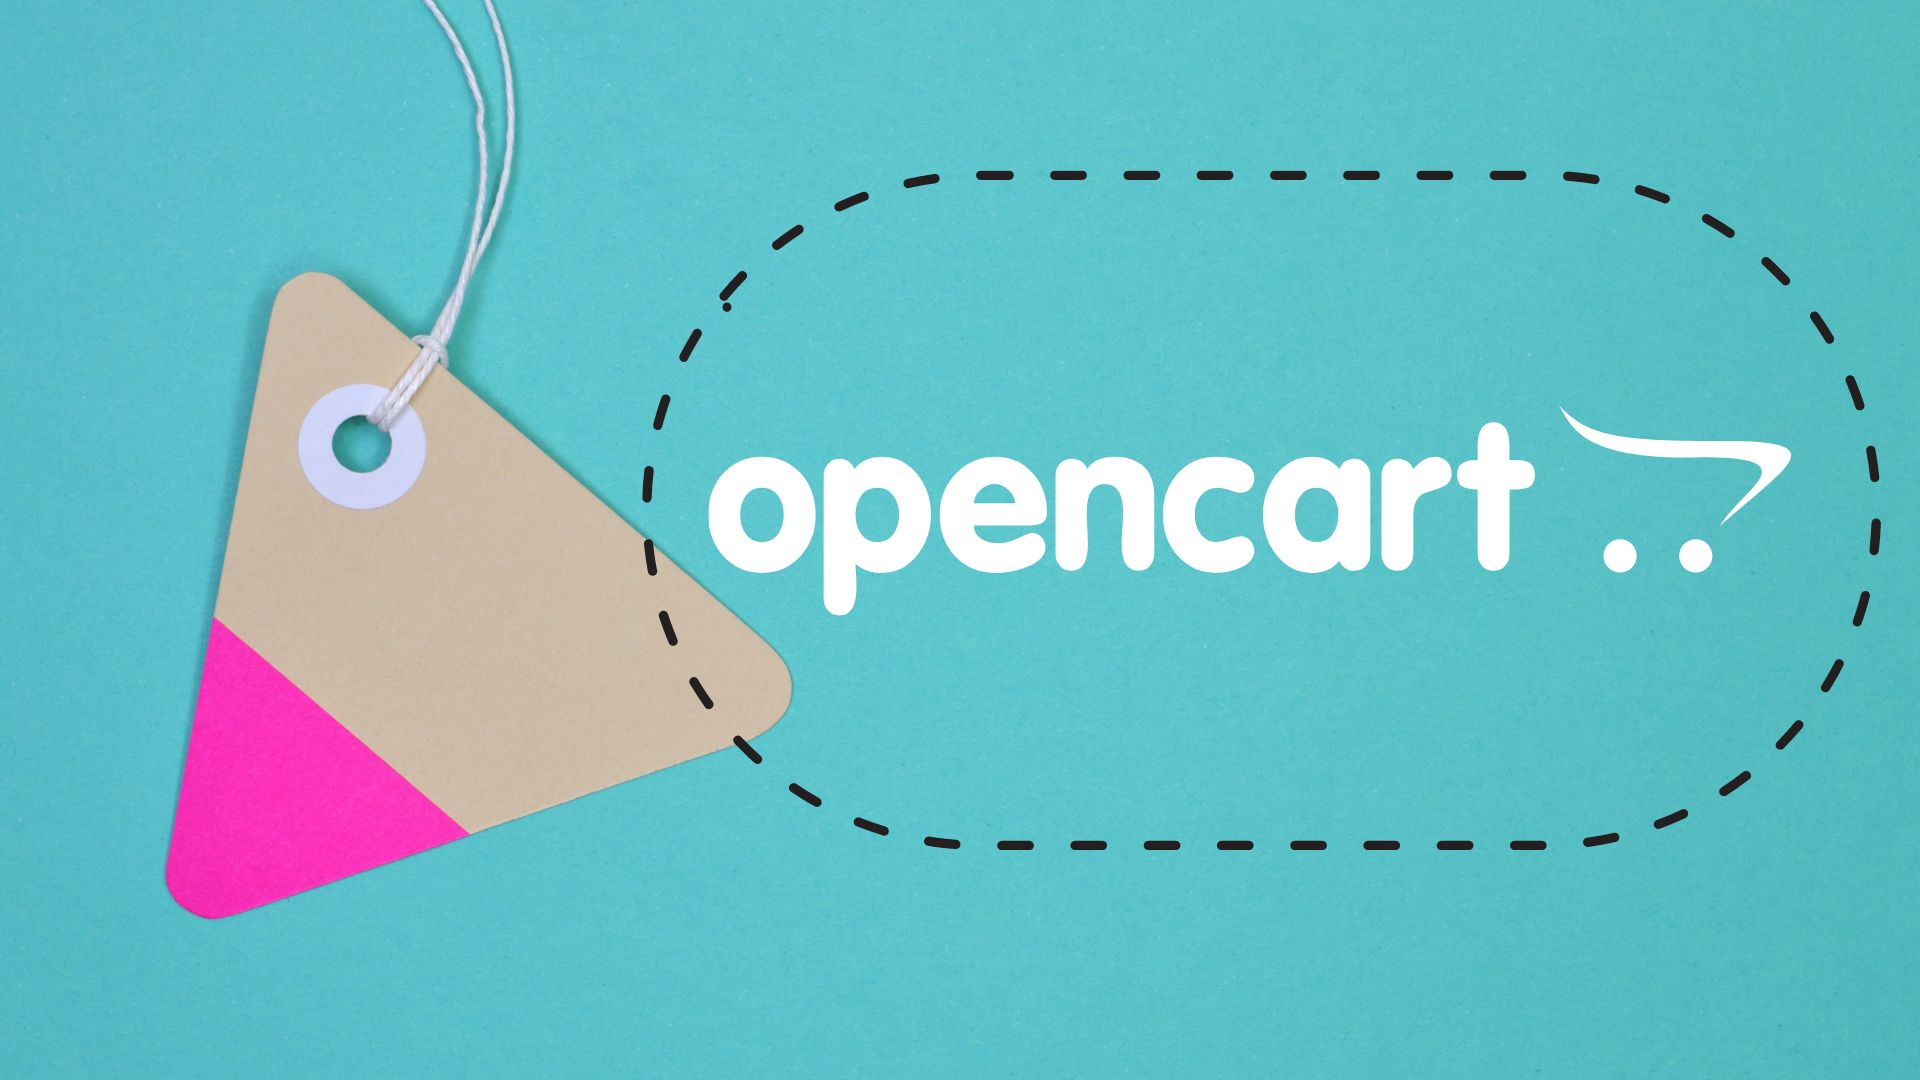 What is Open cart ?